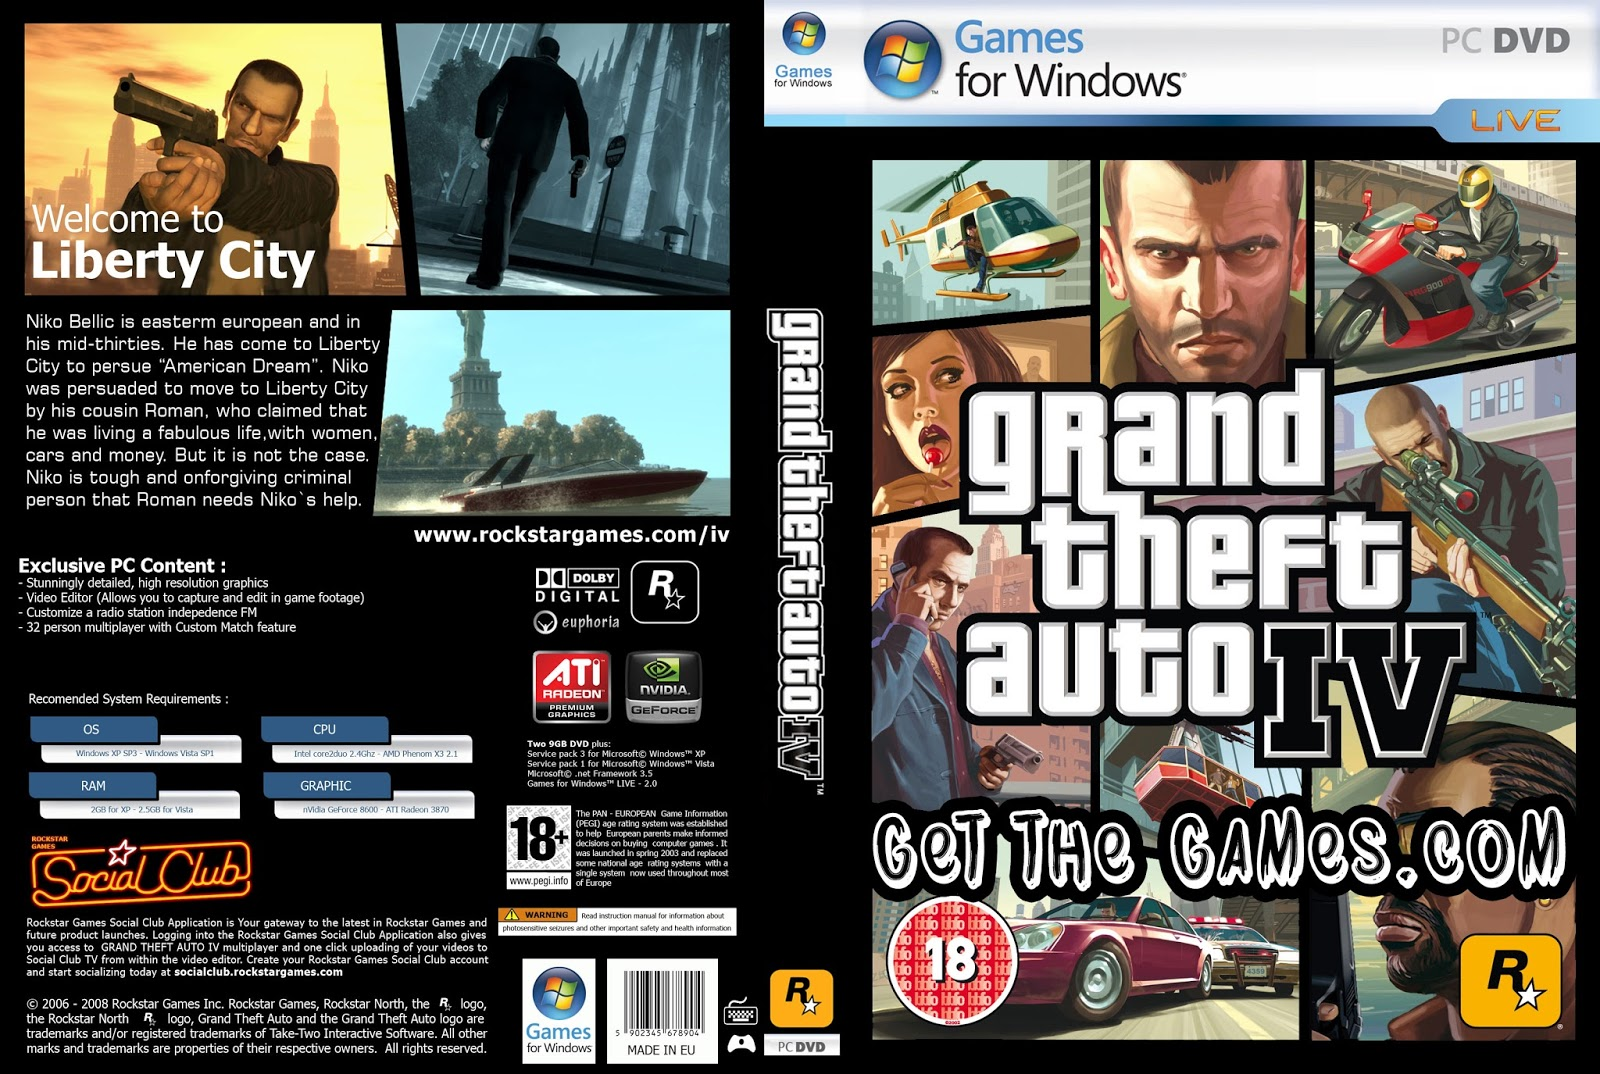 Grand Theft Auto 4/GTA 4 Free Download On PC! ~ Get The